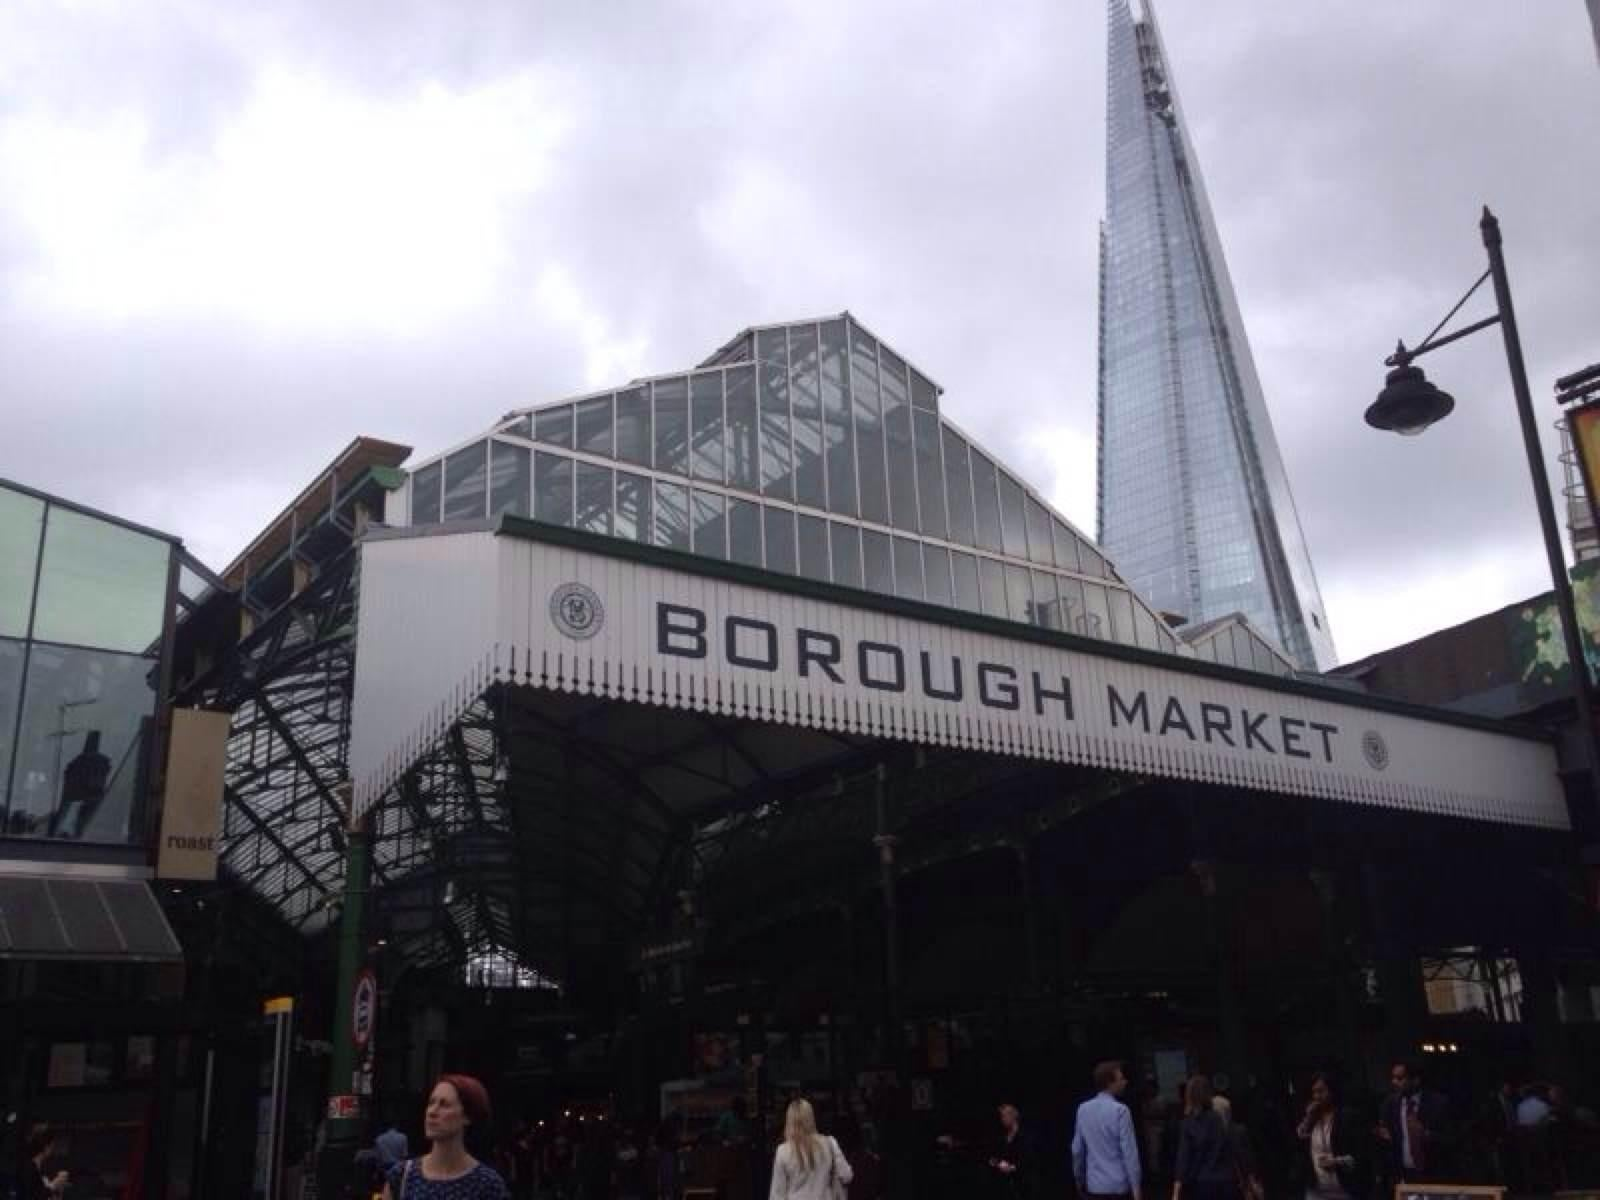 Edificio deportivo en Borough Market